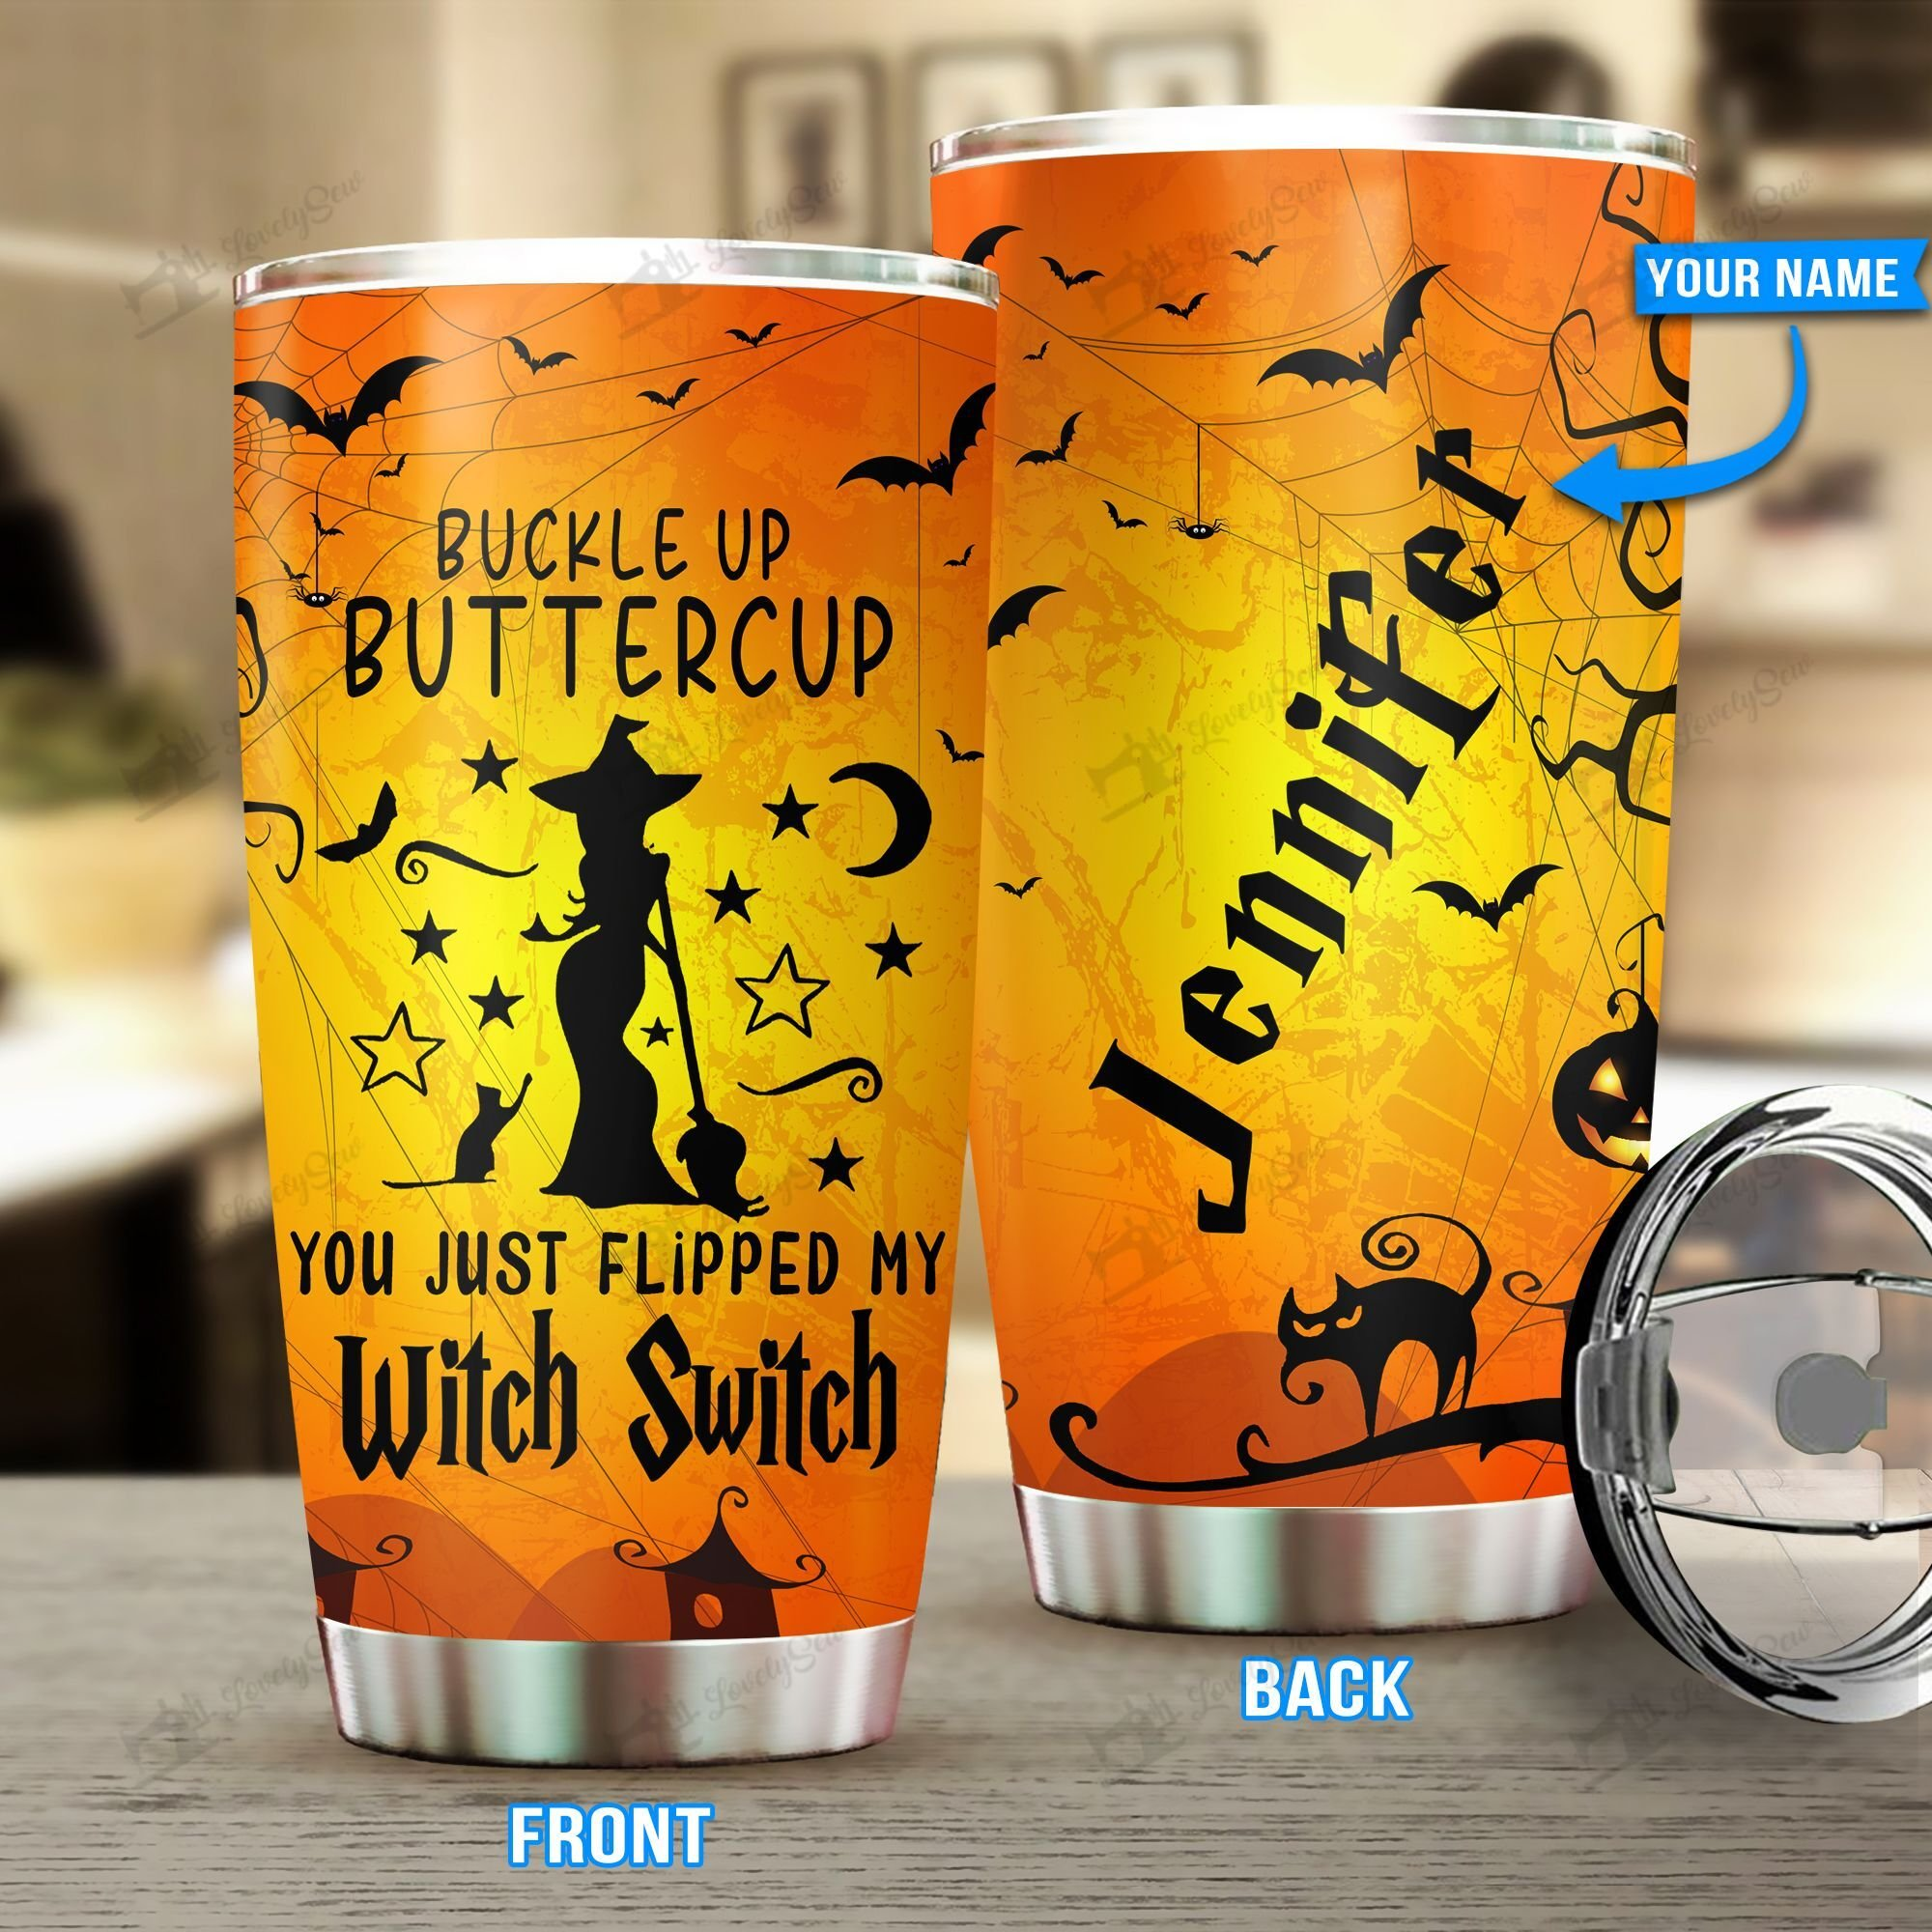 Custom Name Witch Switch Buckle Up Buttercup Stainless Steel Tumbler